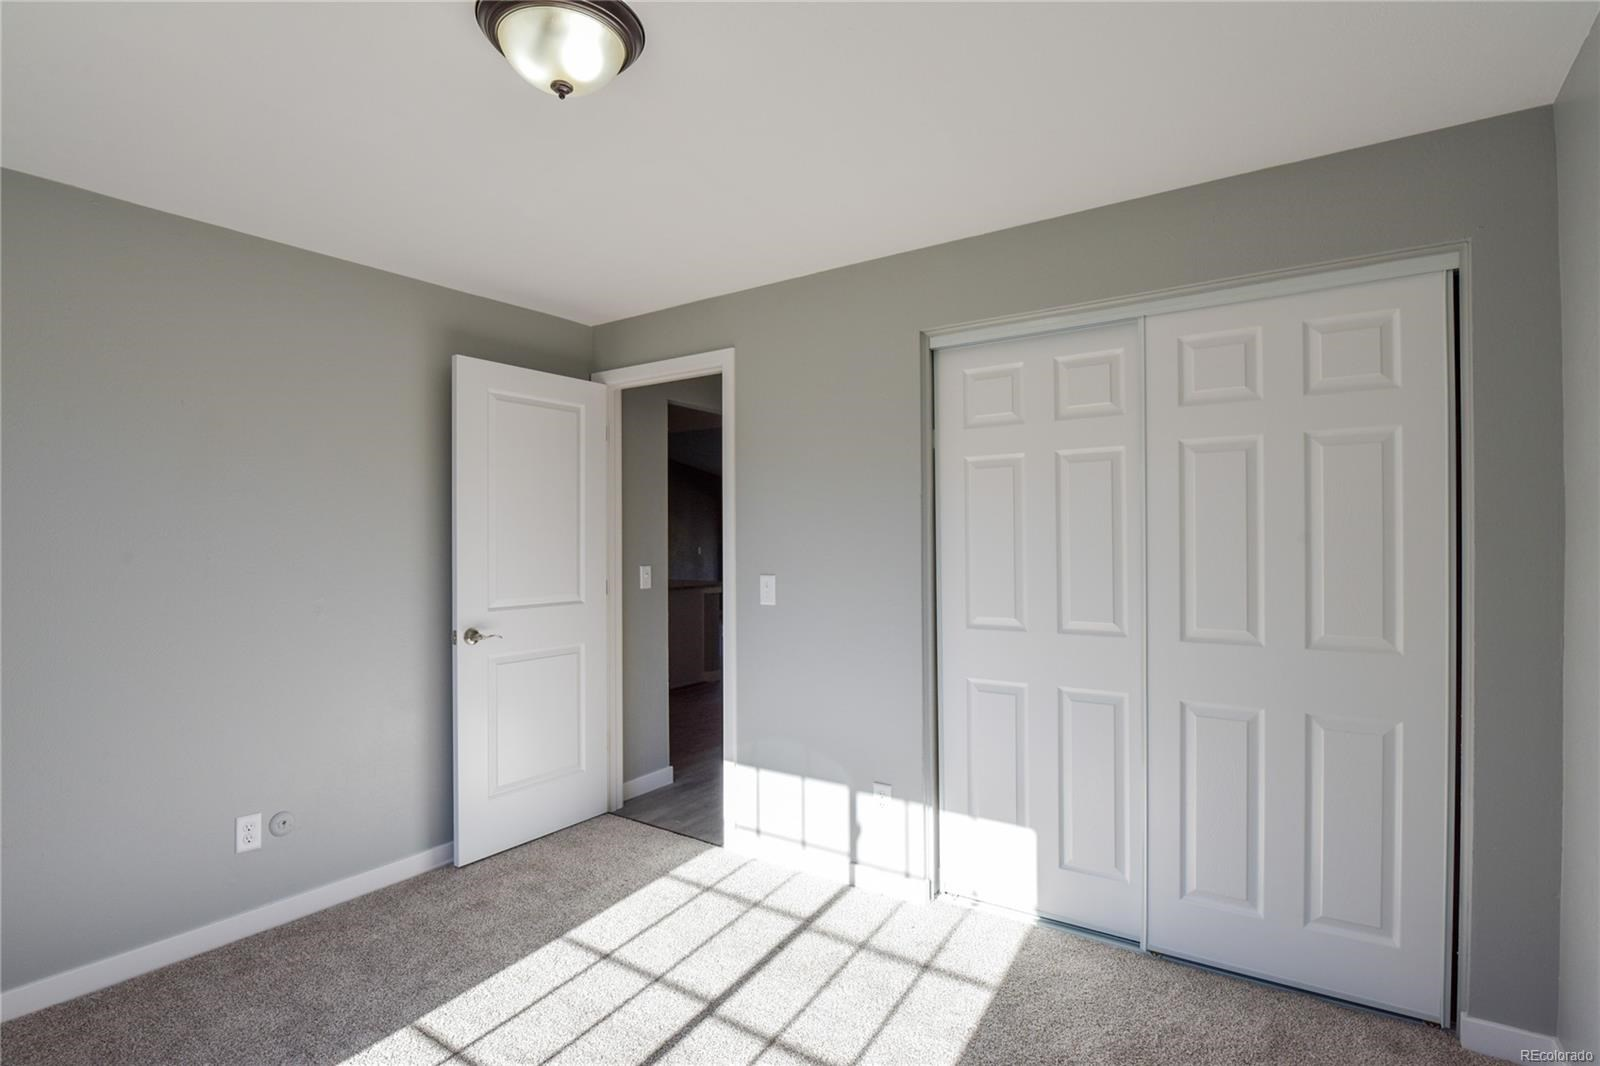 MLS# 8183776 - 34 - 2547 W 104th Circle, Westminster, CO 80234